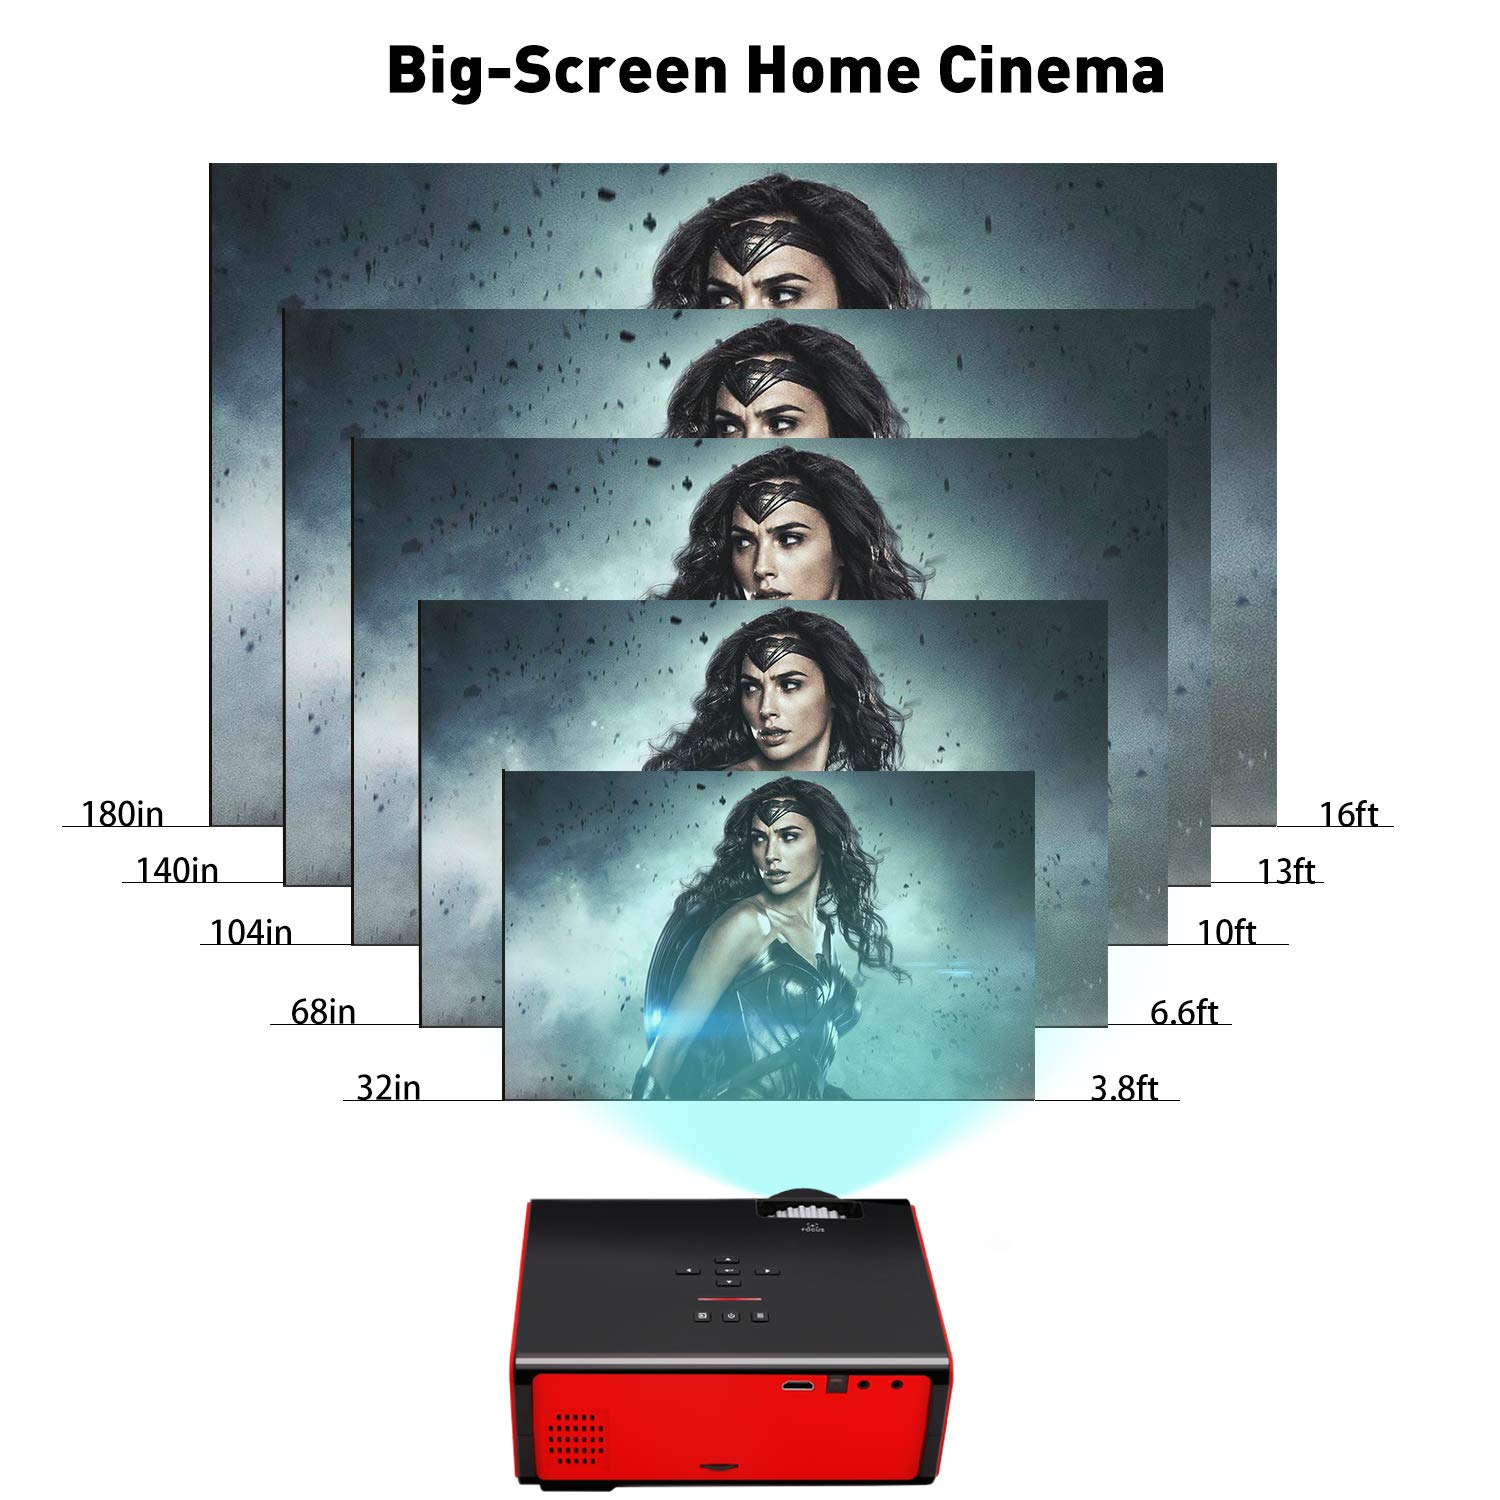 Projector Paick LED Video Projector Upgraded +50% Brighter 180° Big Screen Support 1080p HD Home Cinema Portable Projector with HDMI/USB/SD/AV/VGA Input for Mac/PC/TV/Movies/Games